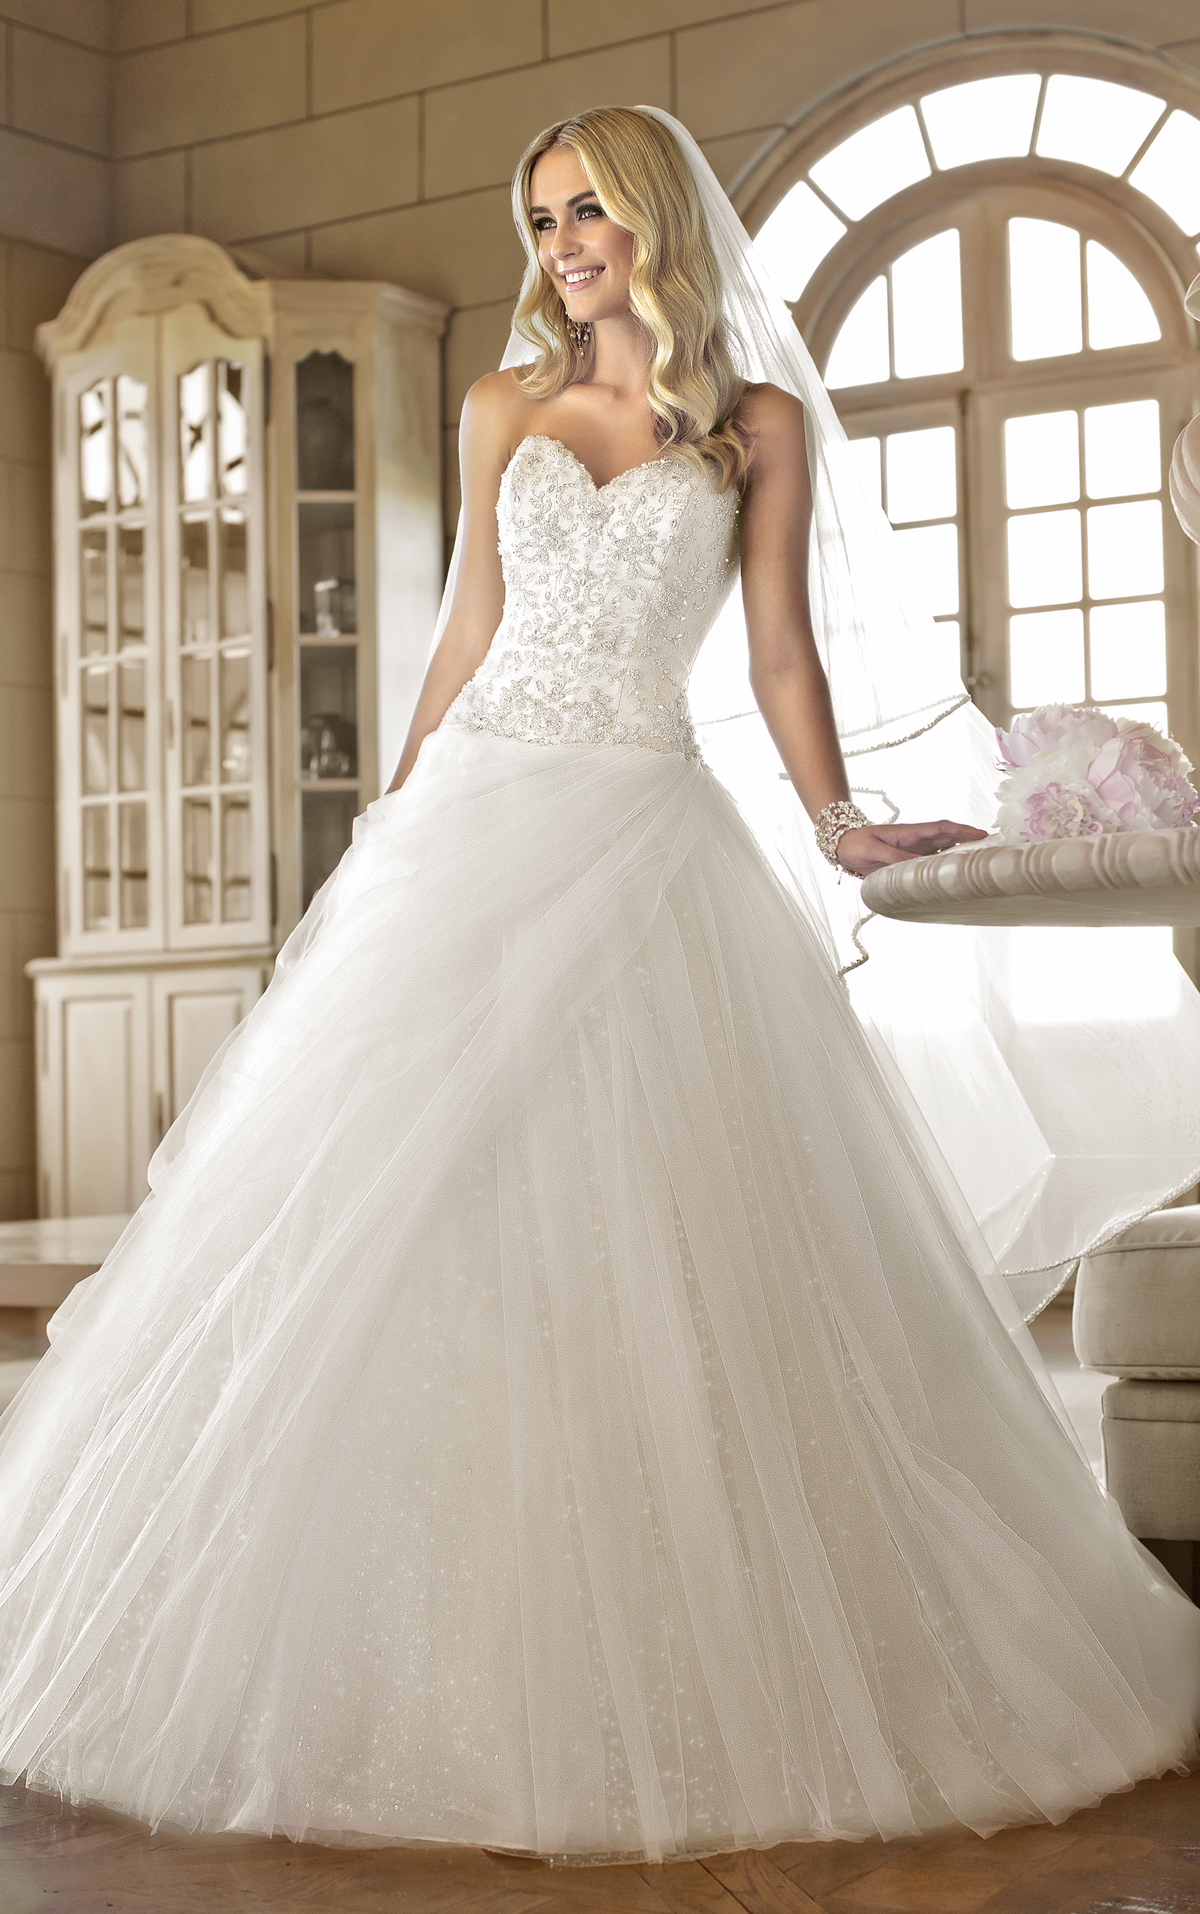 Bride Gowns The Best Gowns From The Most In Demand Wedding Dress